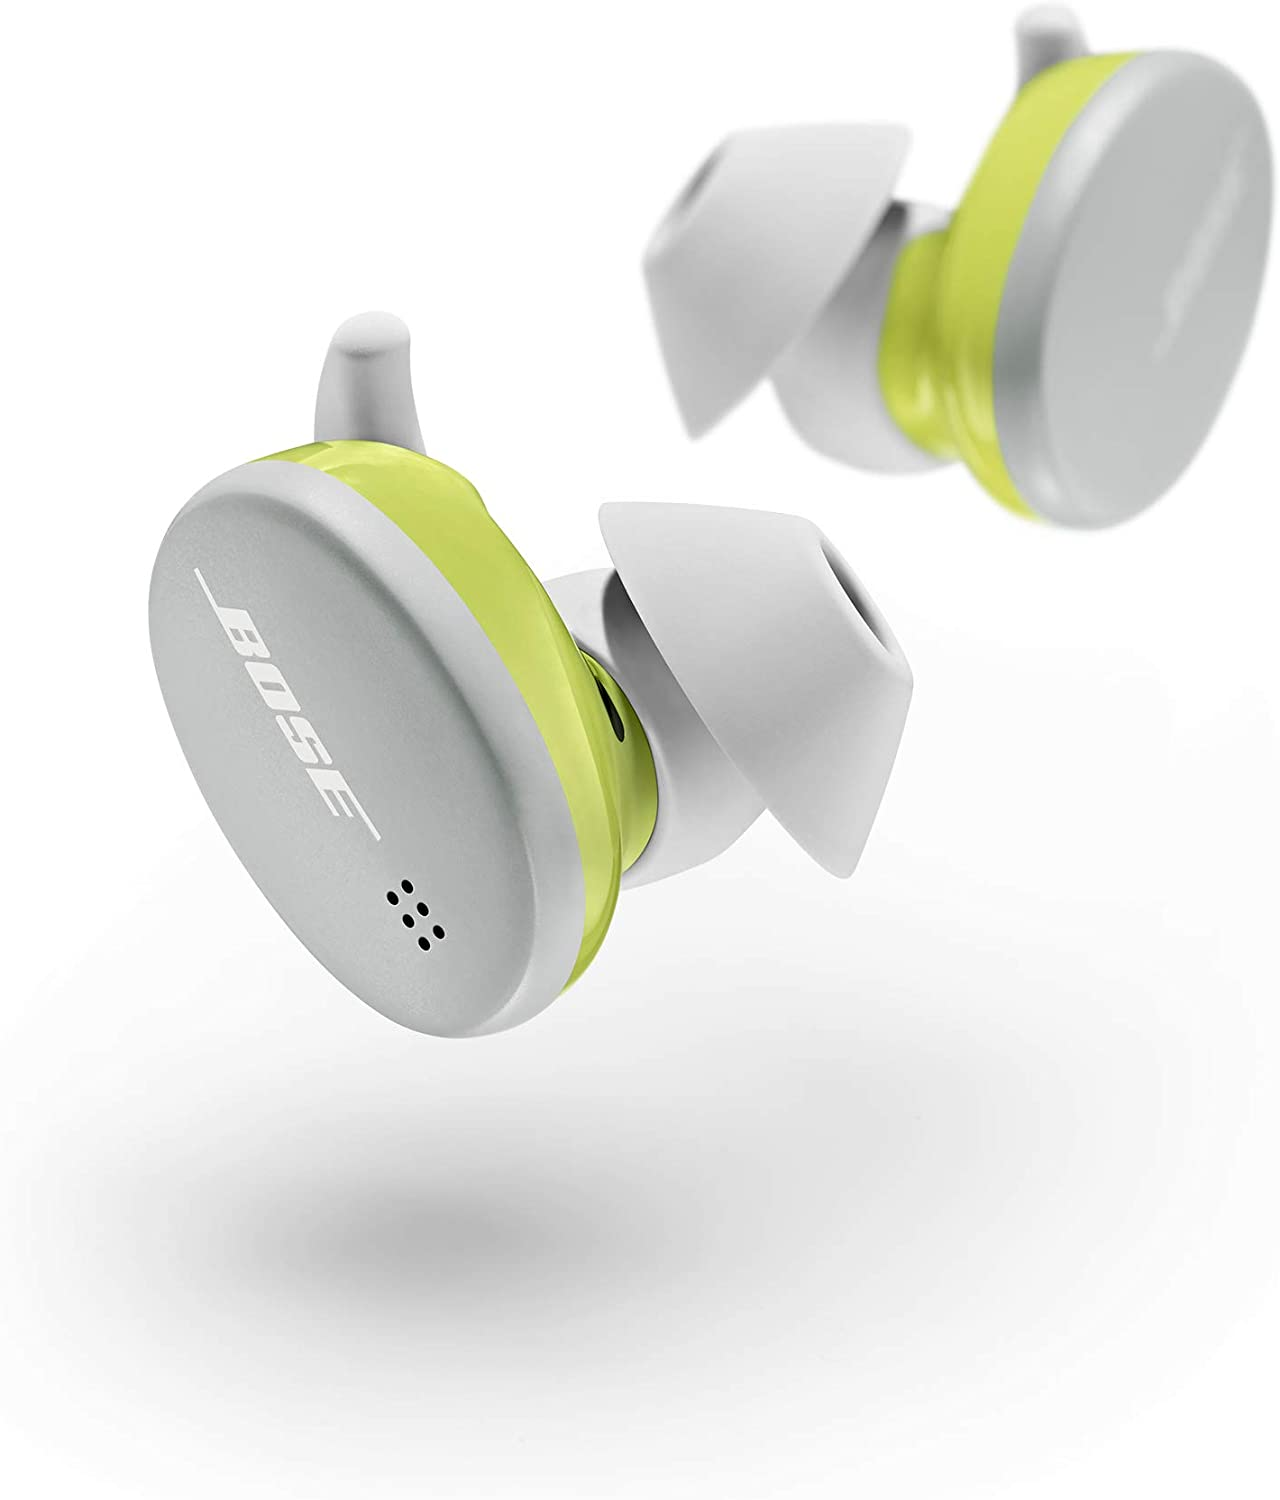 Bose Sport Earbuds - True Wireless Earphones - Bluetooth Headphones for Workouts and Running, Glacier White